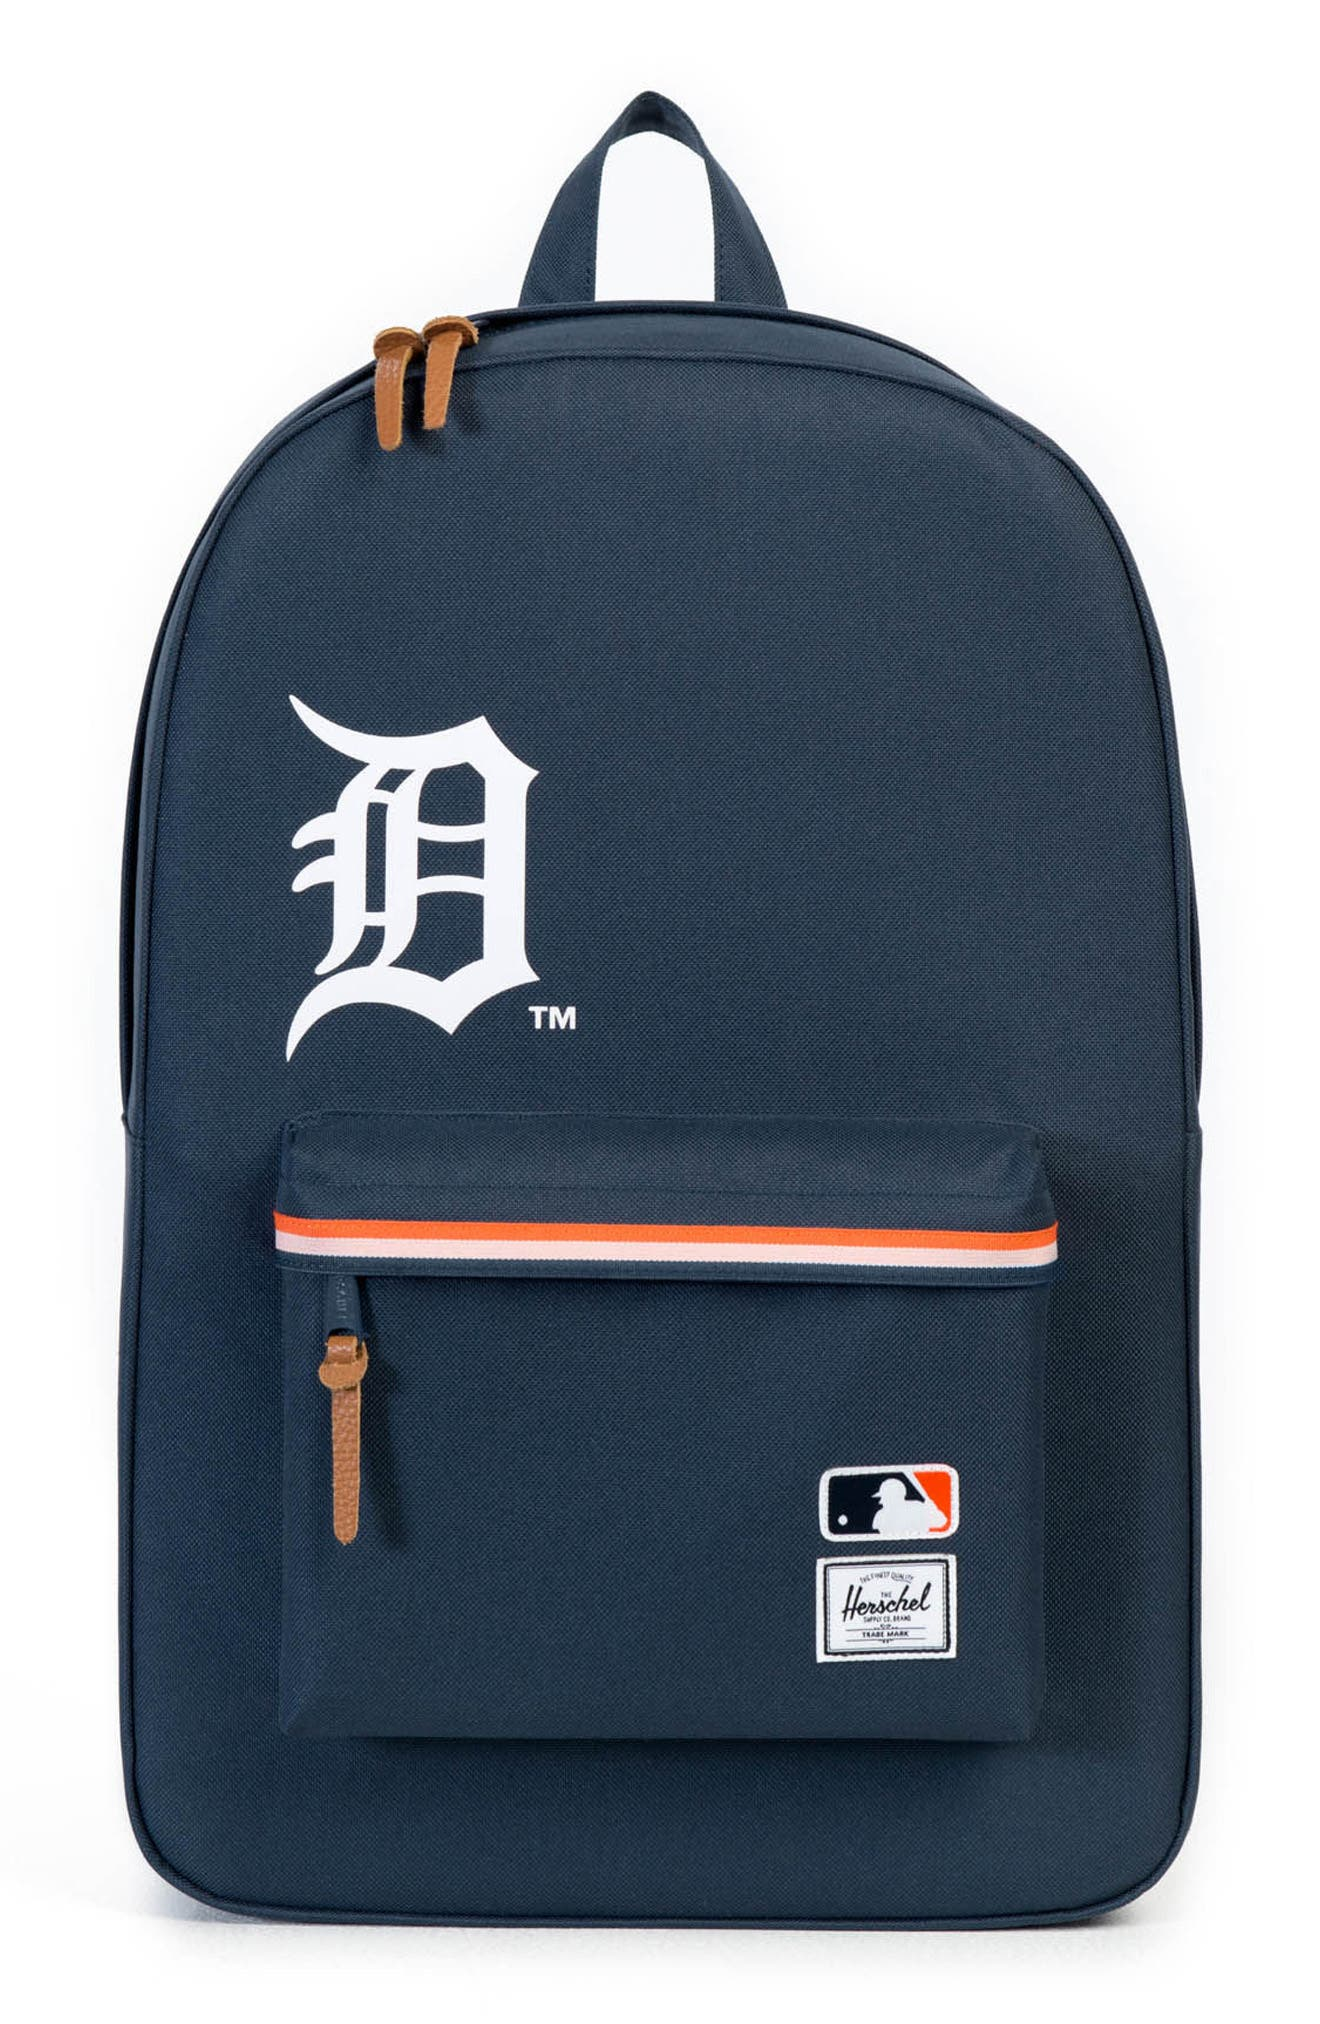 Heritage Detroit Tigers Backpack,                             Main thumbnail 1, color,                             499